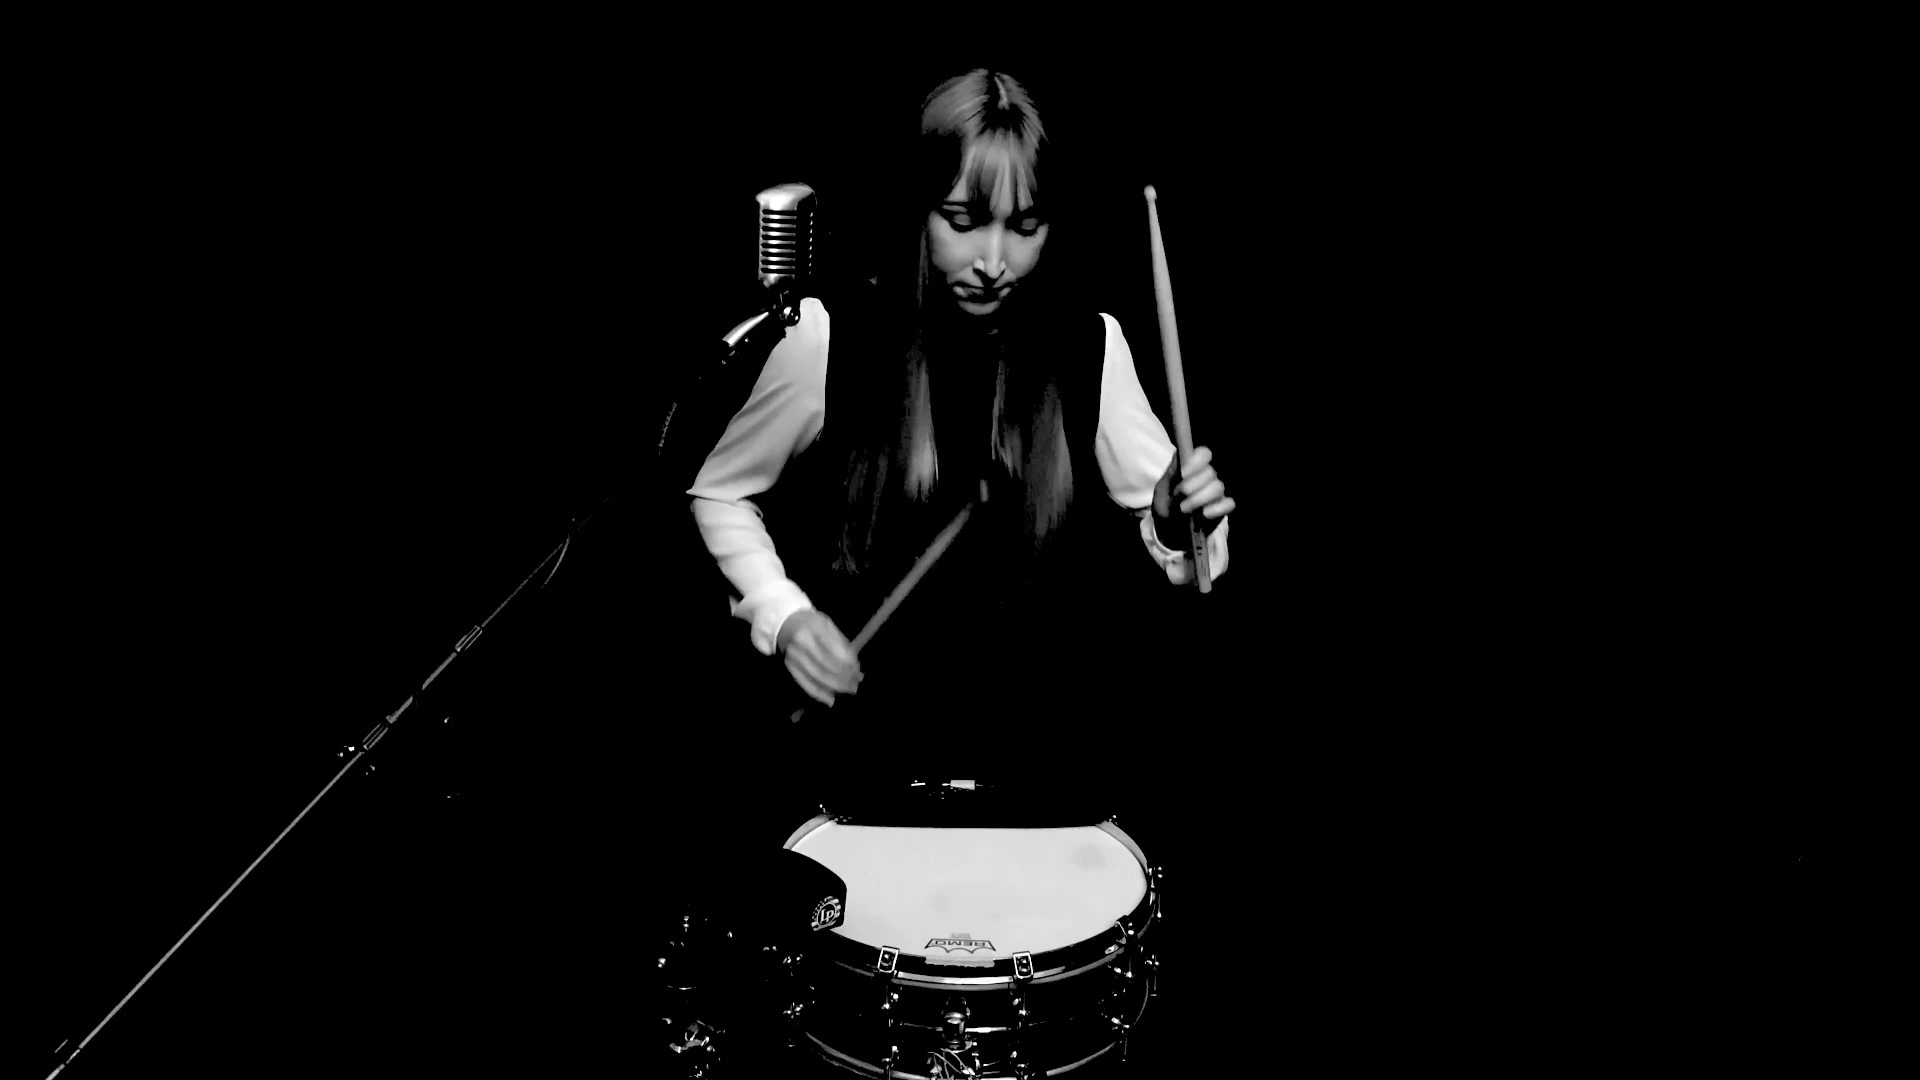 Black and white image of a woman in performance black playing a snare drum